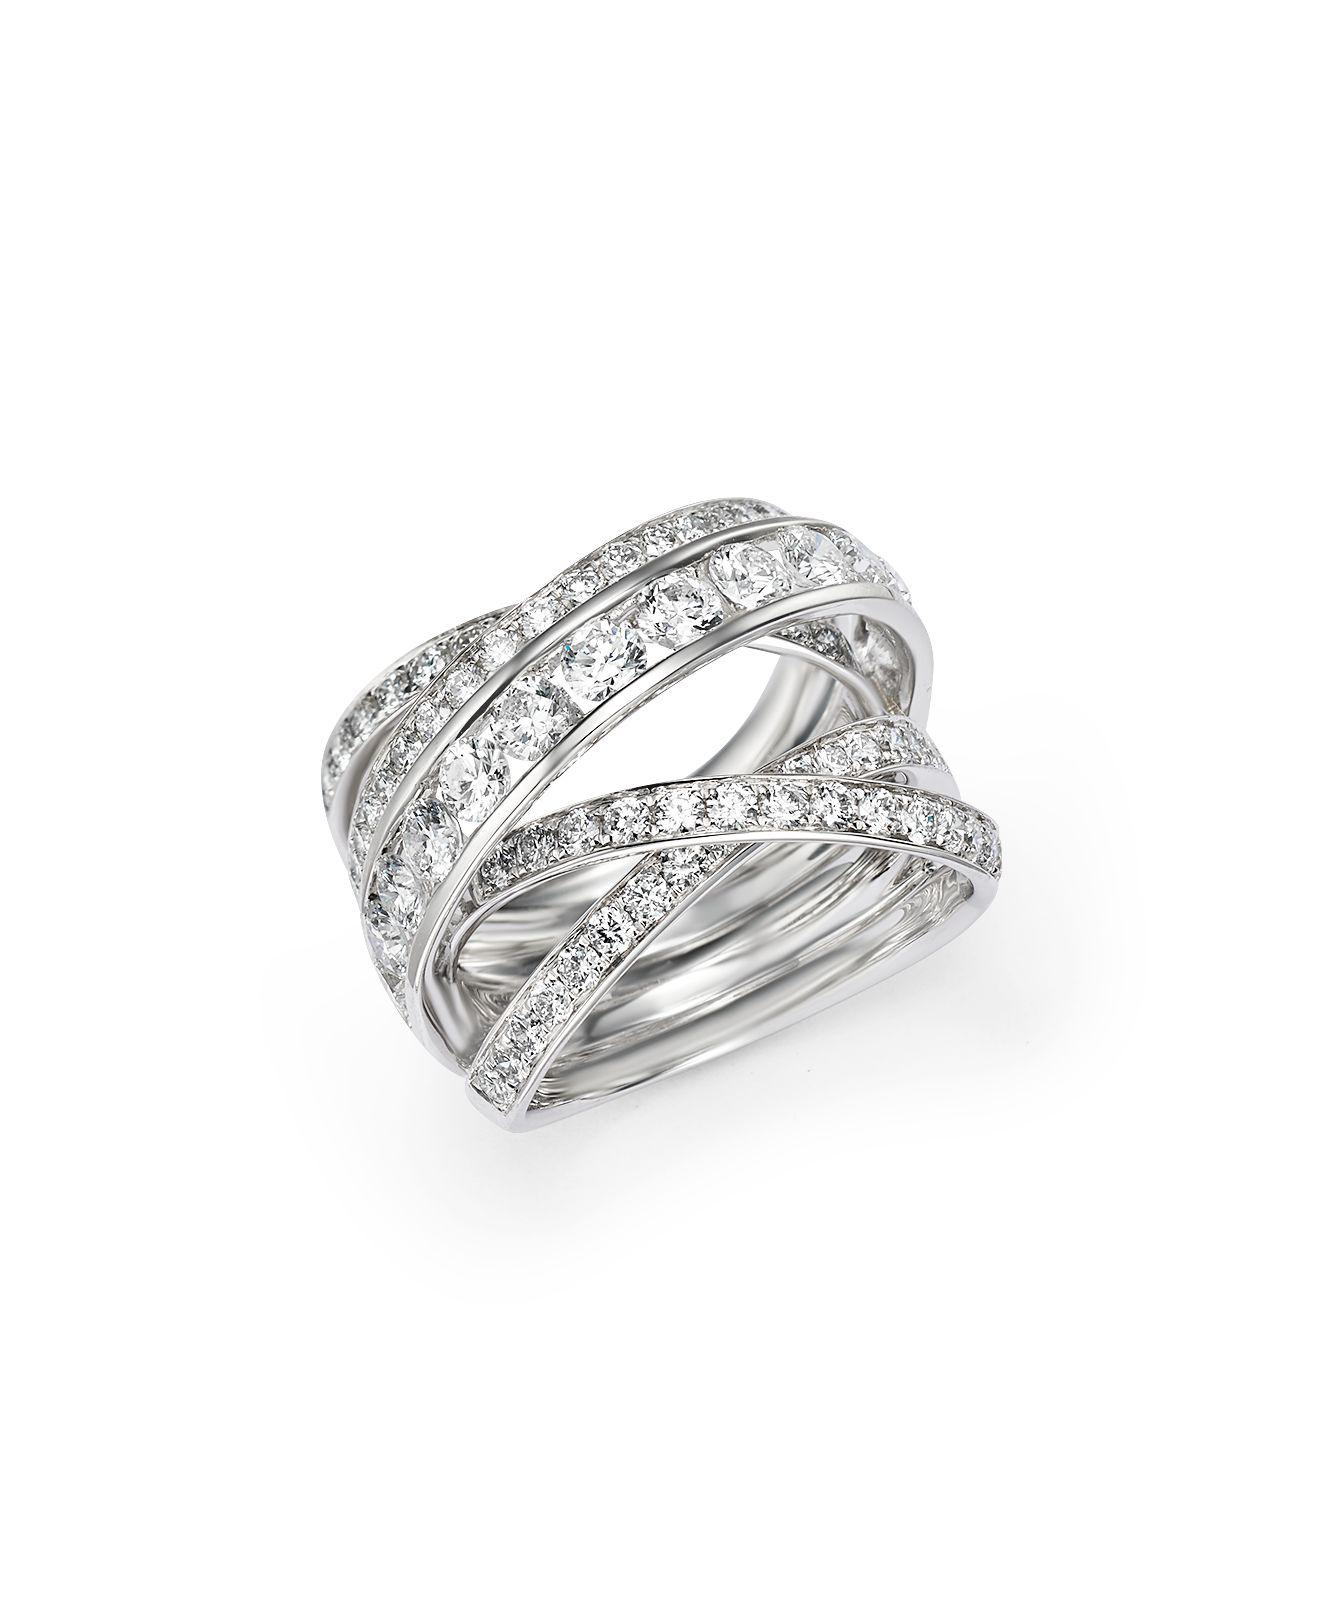 Lyst BloomingdaleS Diamond Crossover Ring In 14k White Gold 30